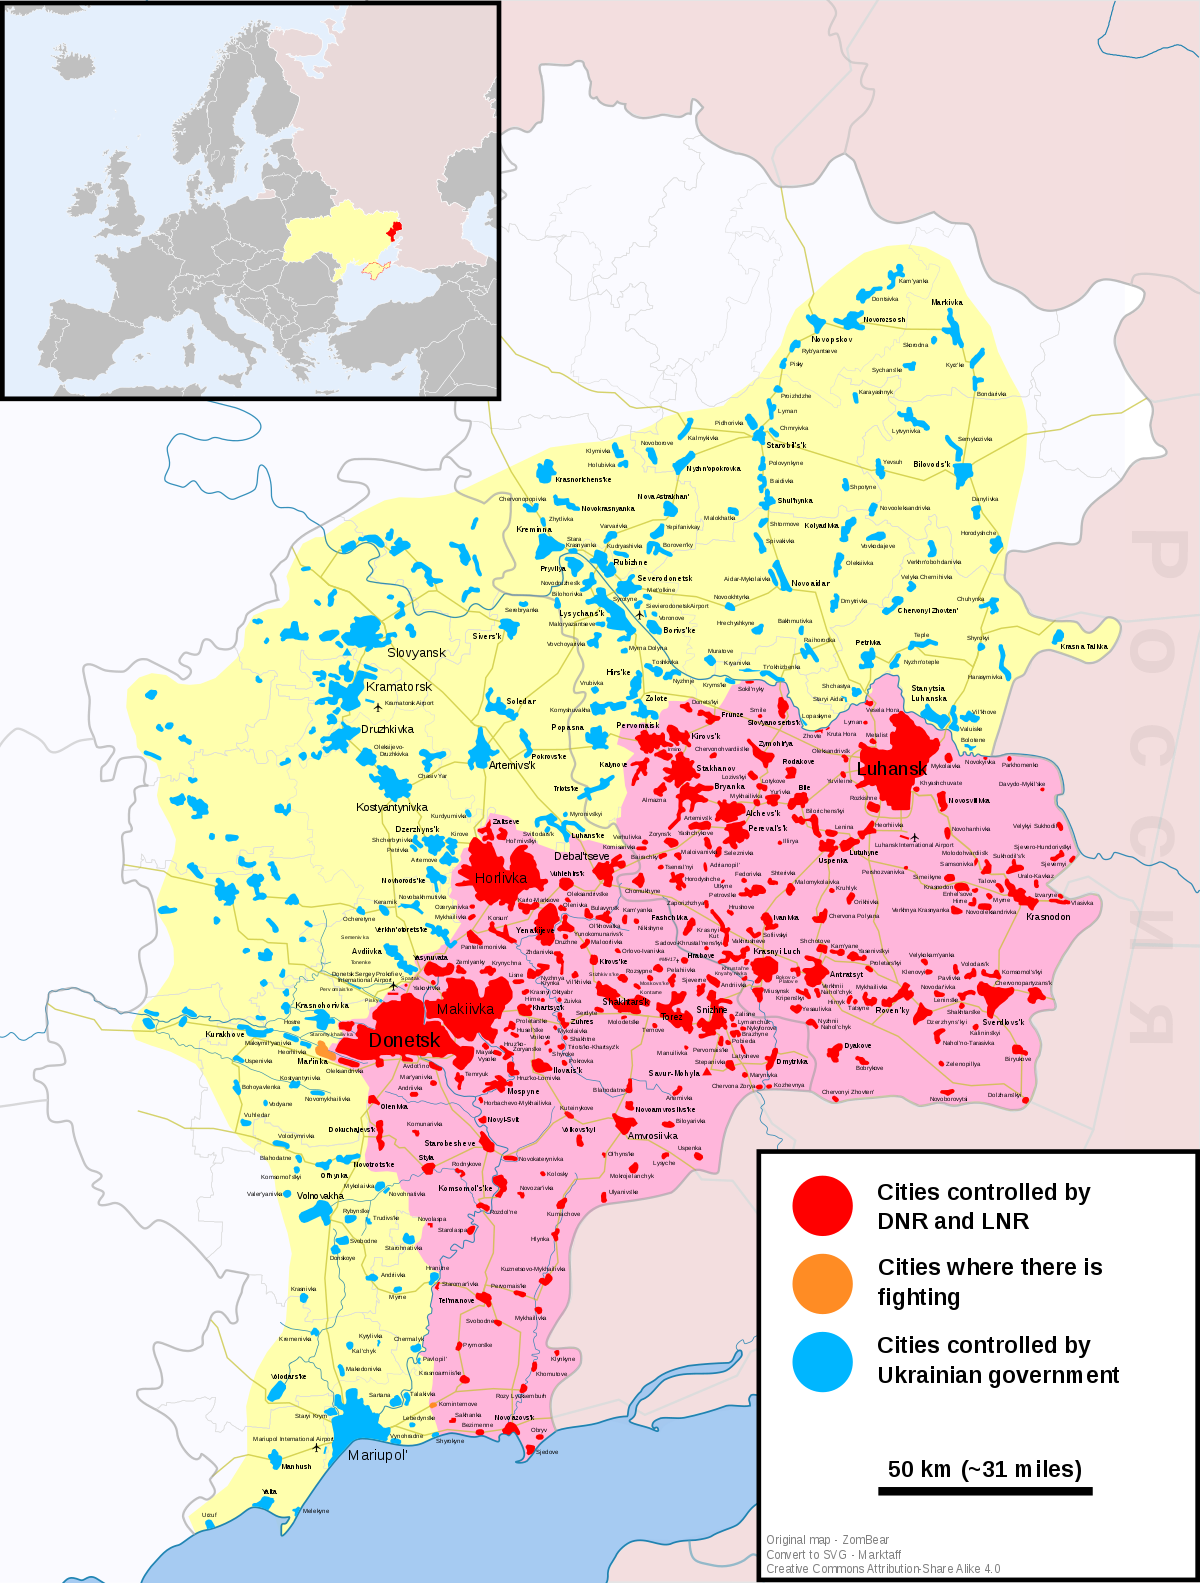 Optics of the Luhansk region: a selection of sites